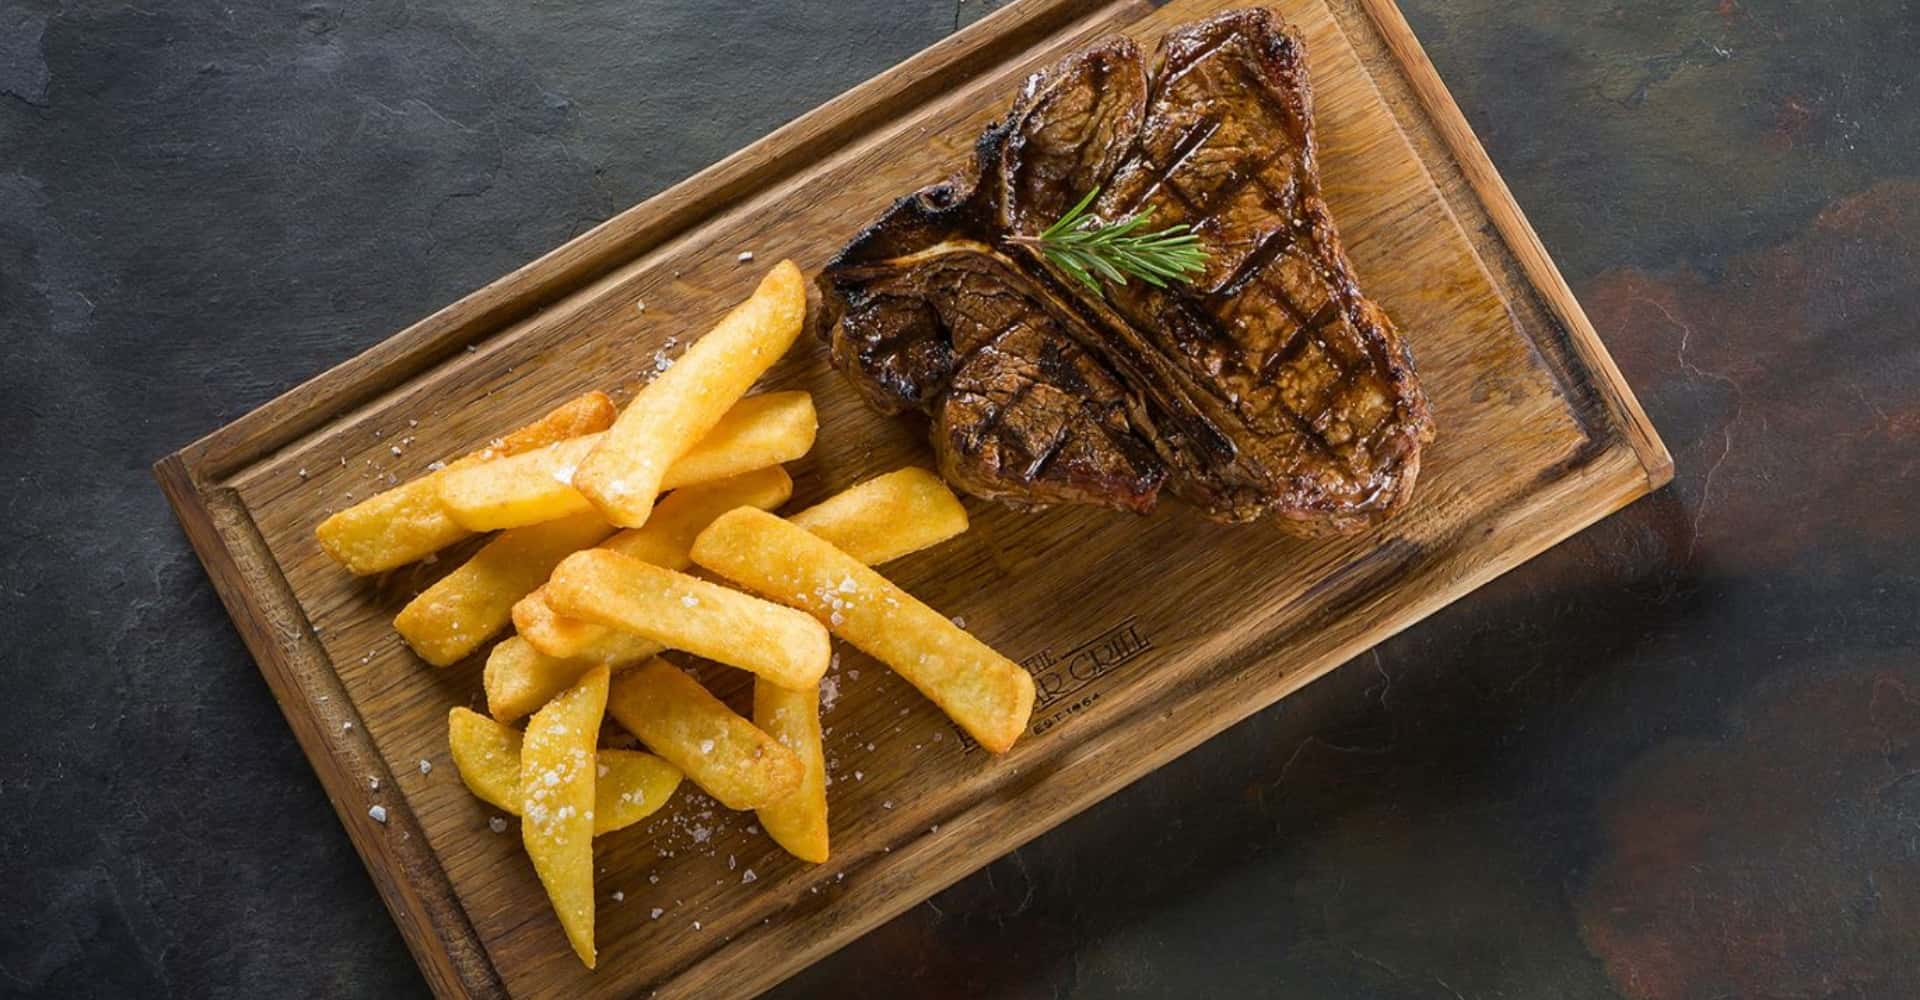 The Hussar Grill Steak and chips